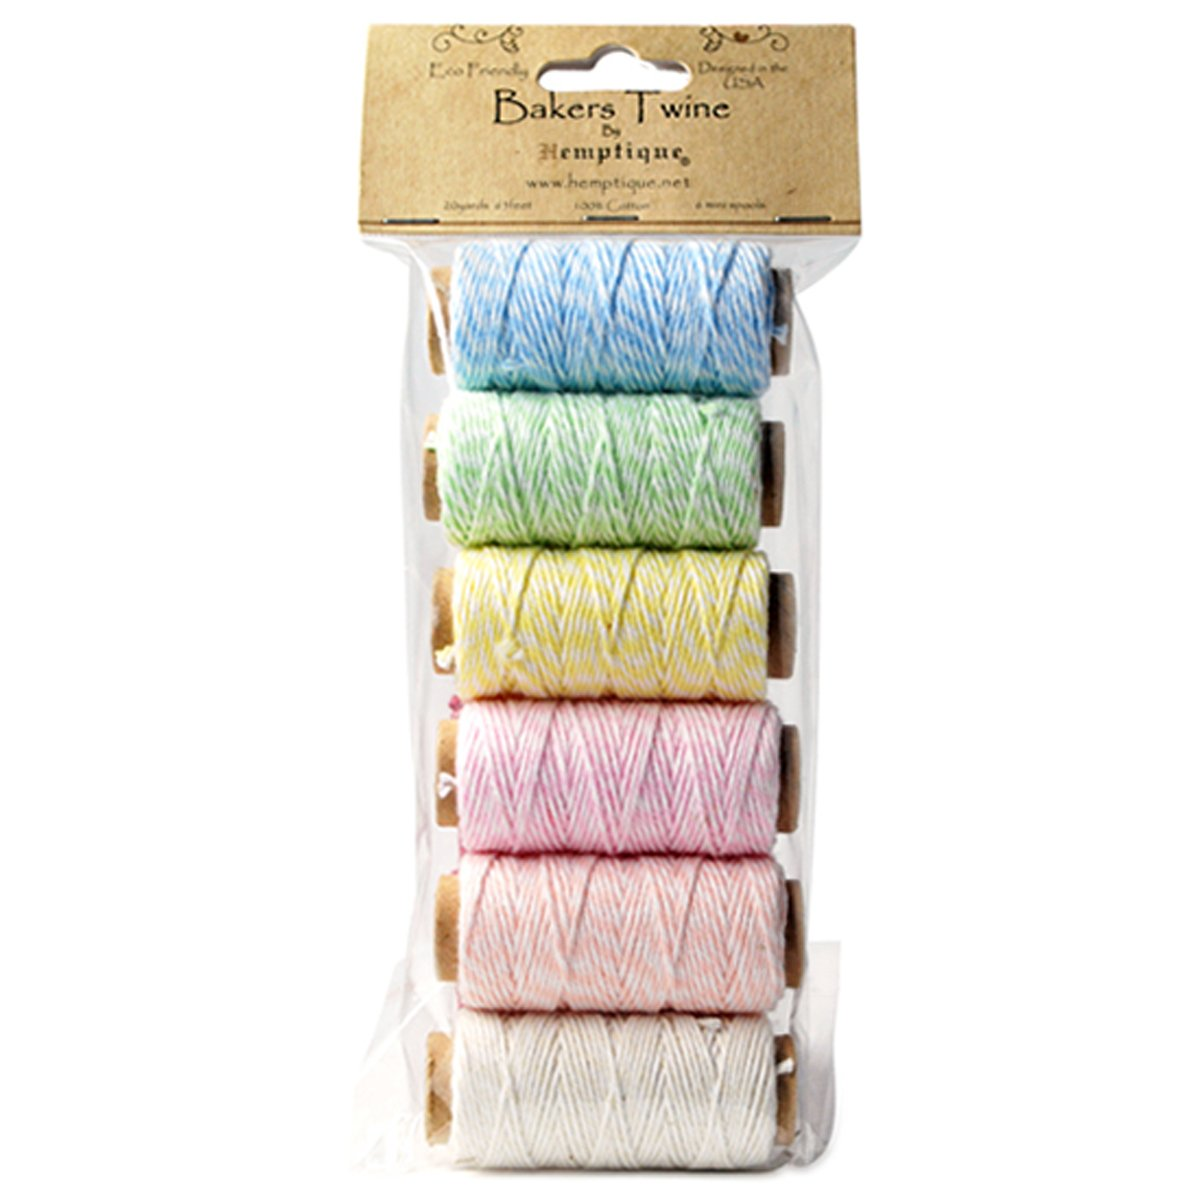 Hemptique Cotton Baker's Twine Spool Set, Mini, Creamy Pastel by Hemptique